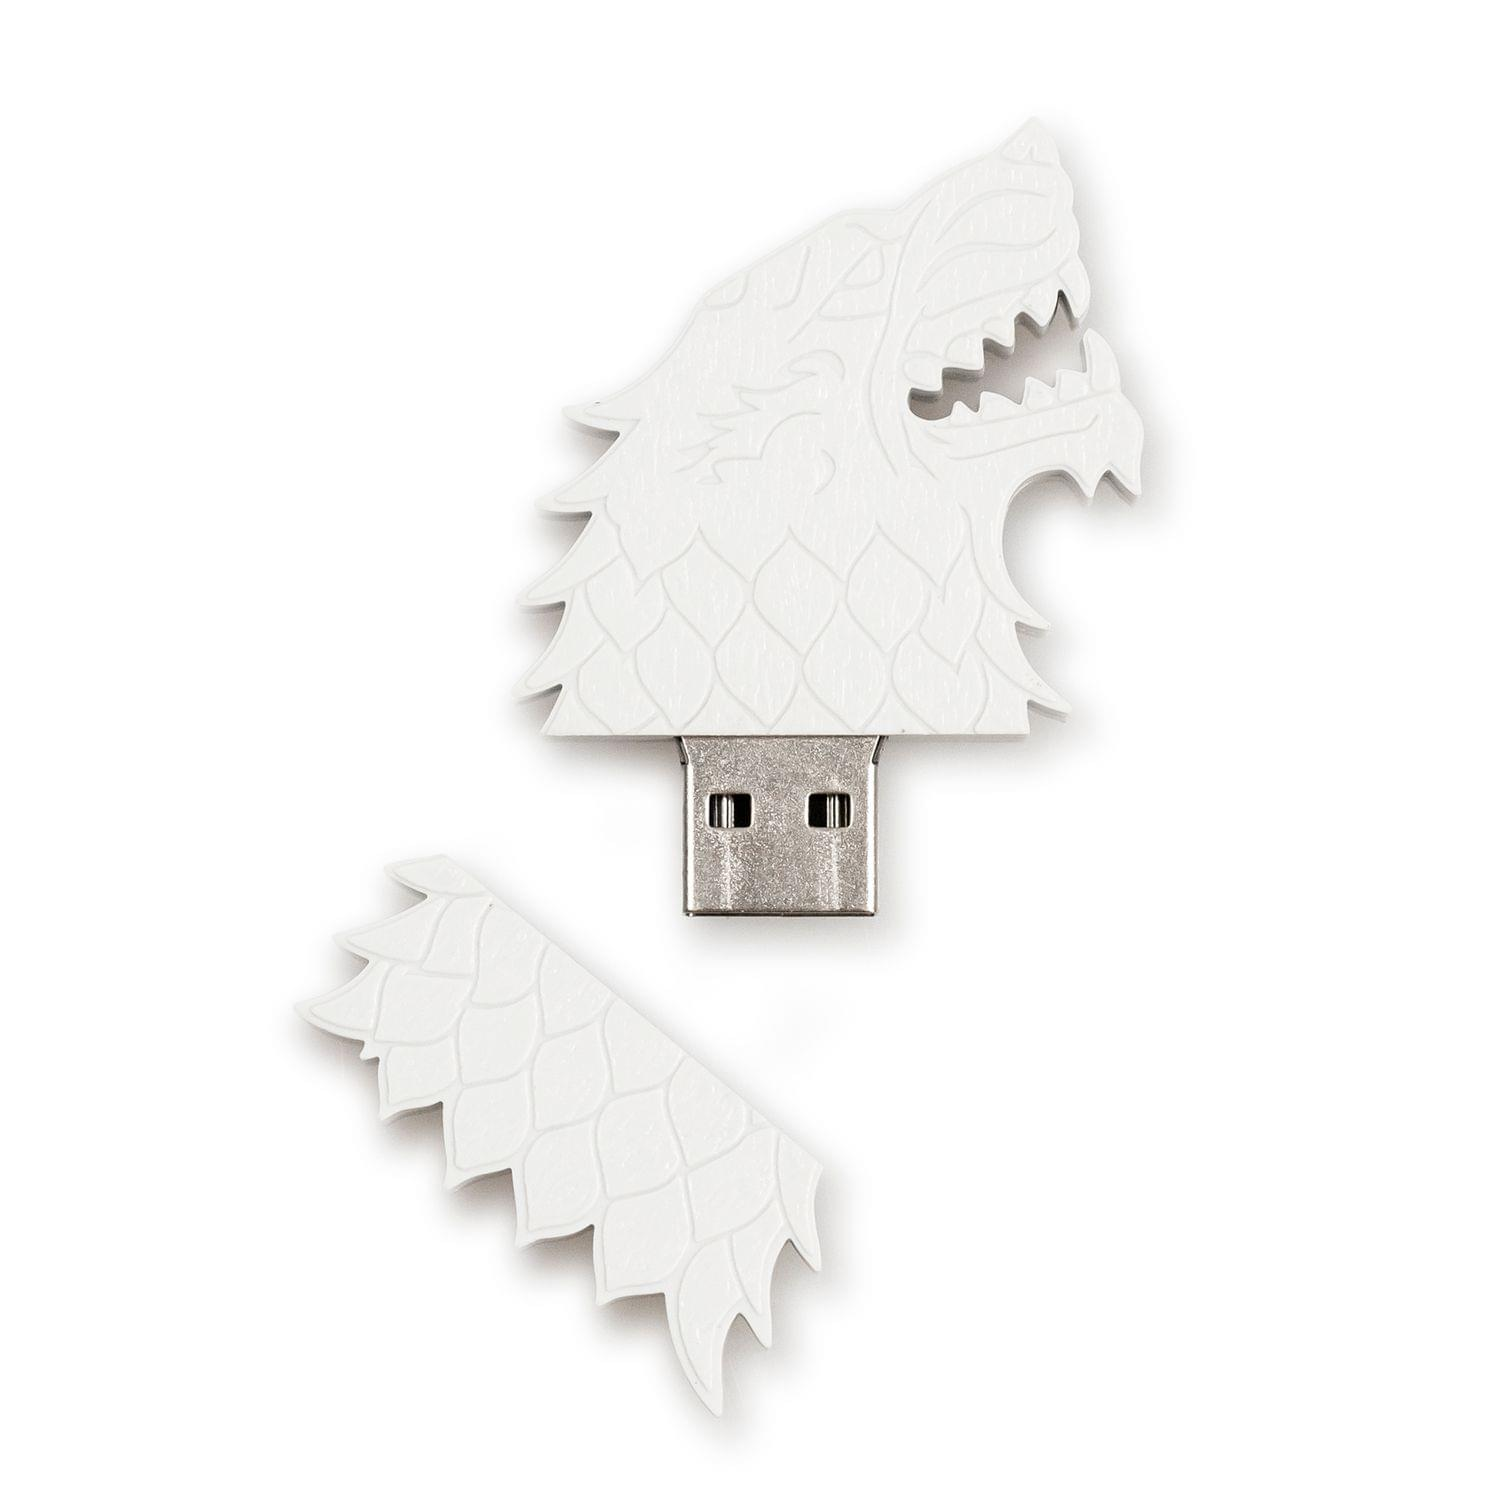 Game of Thrones Dire Wolf 4GB USB Flash Drive, by Games Alliance